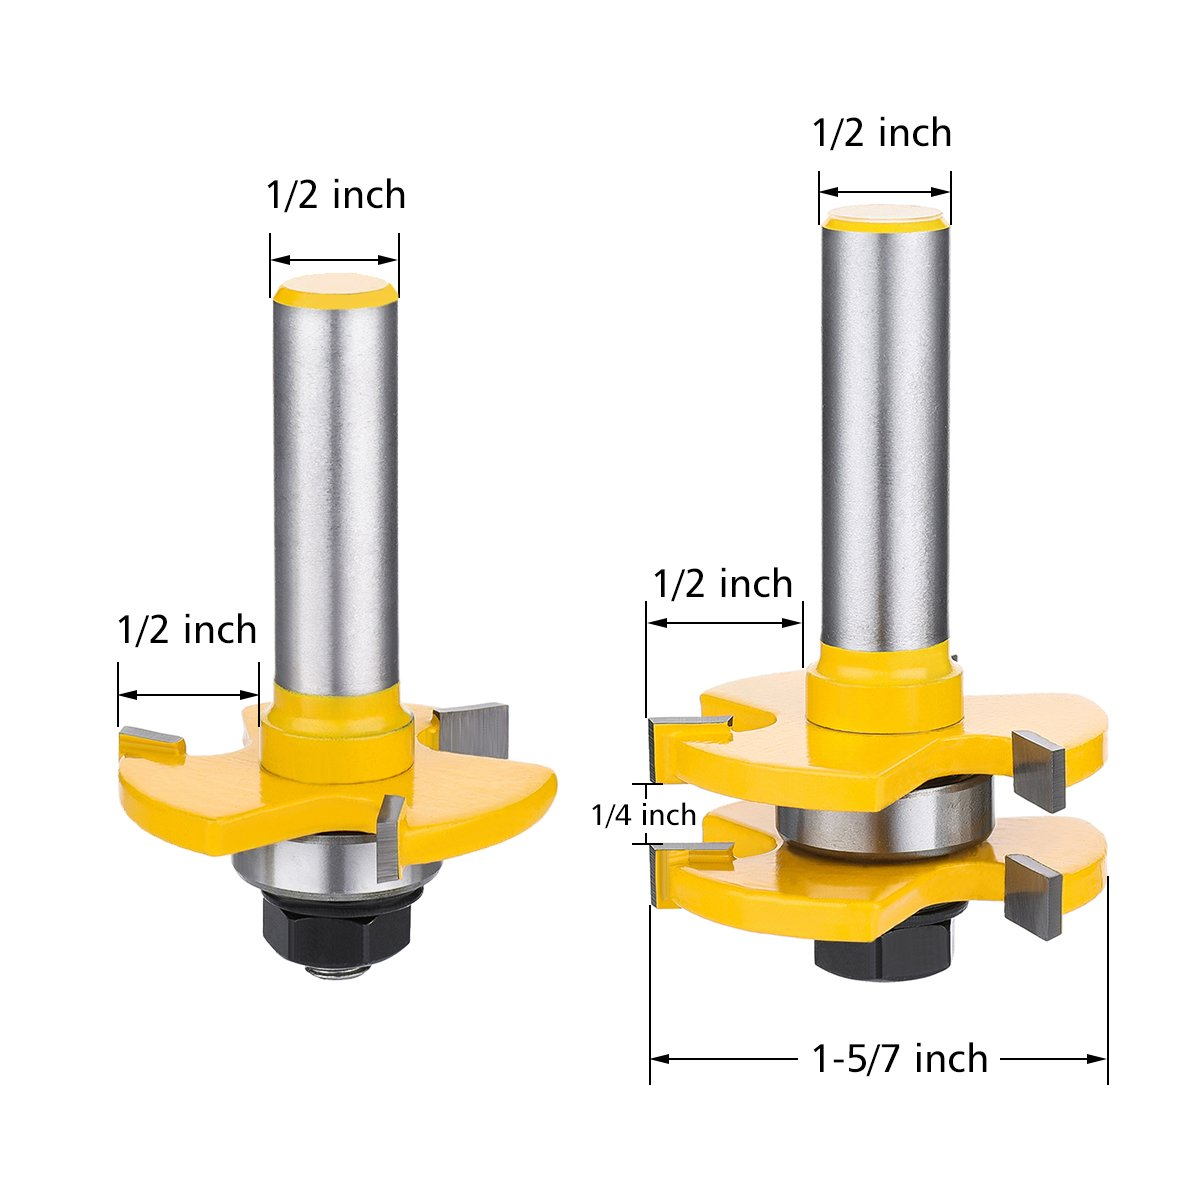 Tongue and Groove Set,DRILLPRO 2PCS Router Bit Set 1/2-Inch Shank T Shape Wood Milling Cutter Woodworking Tool For Doors, Tables, Shelves, Walls, DIY Woodwork by DRILLPRO (Image #4)